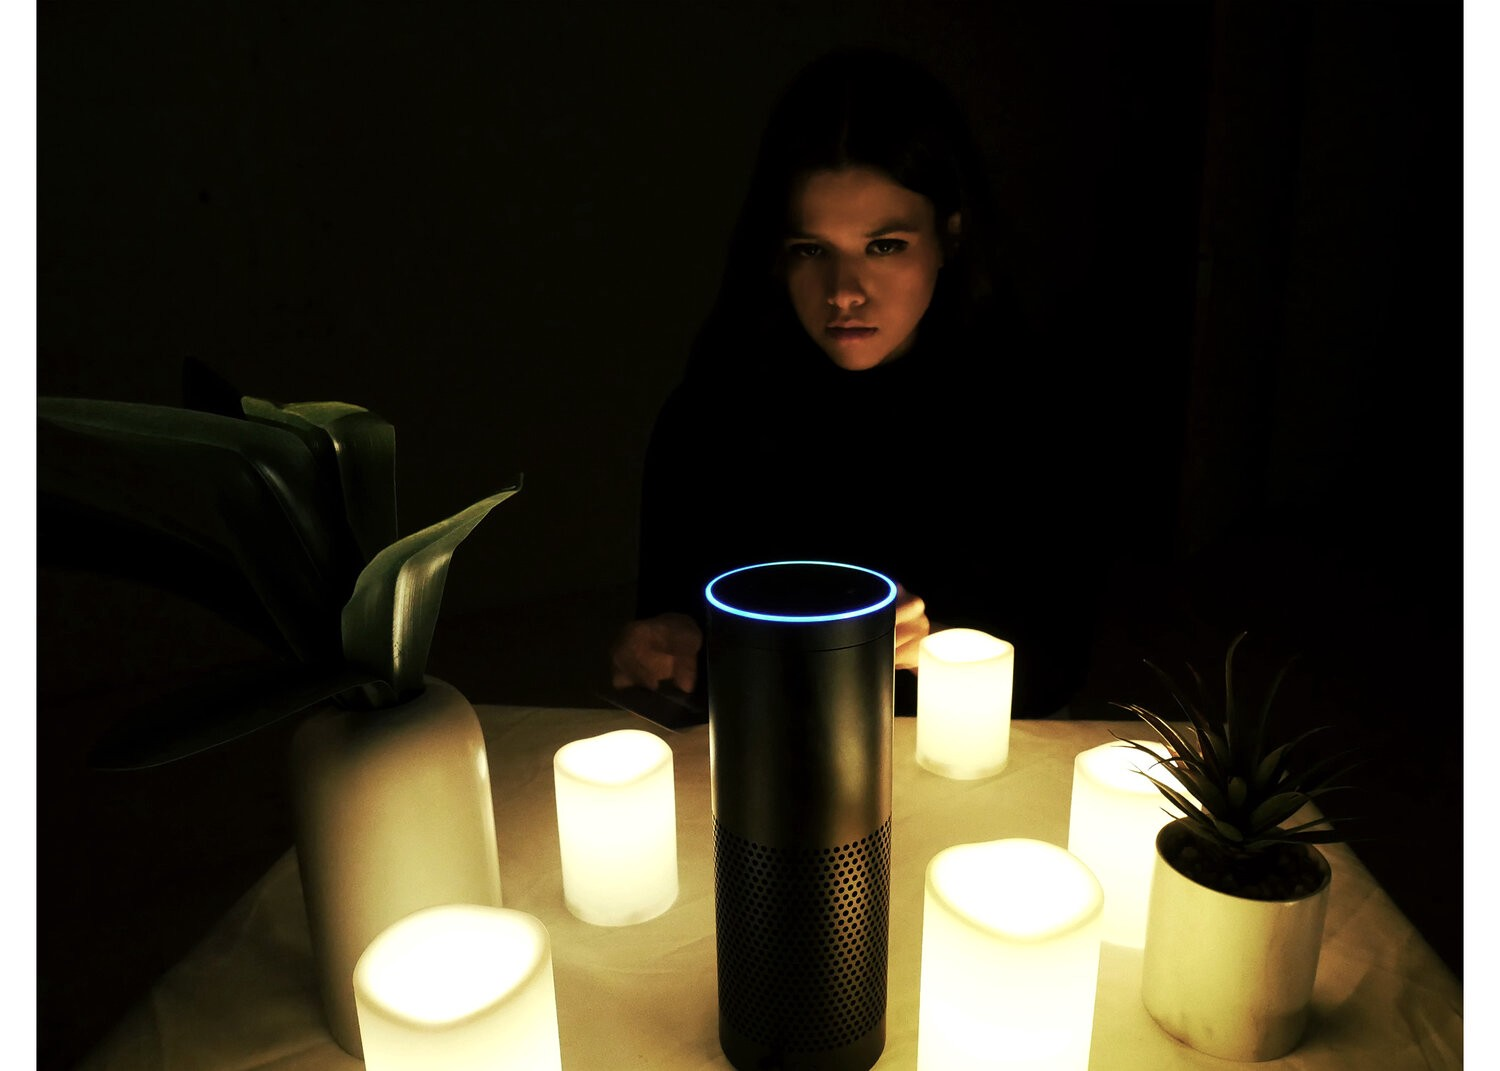 The author sits in the dark behind the Amazon Echo, which is surrounded by lit candles in a seance-style set up.